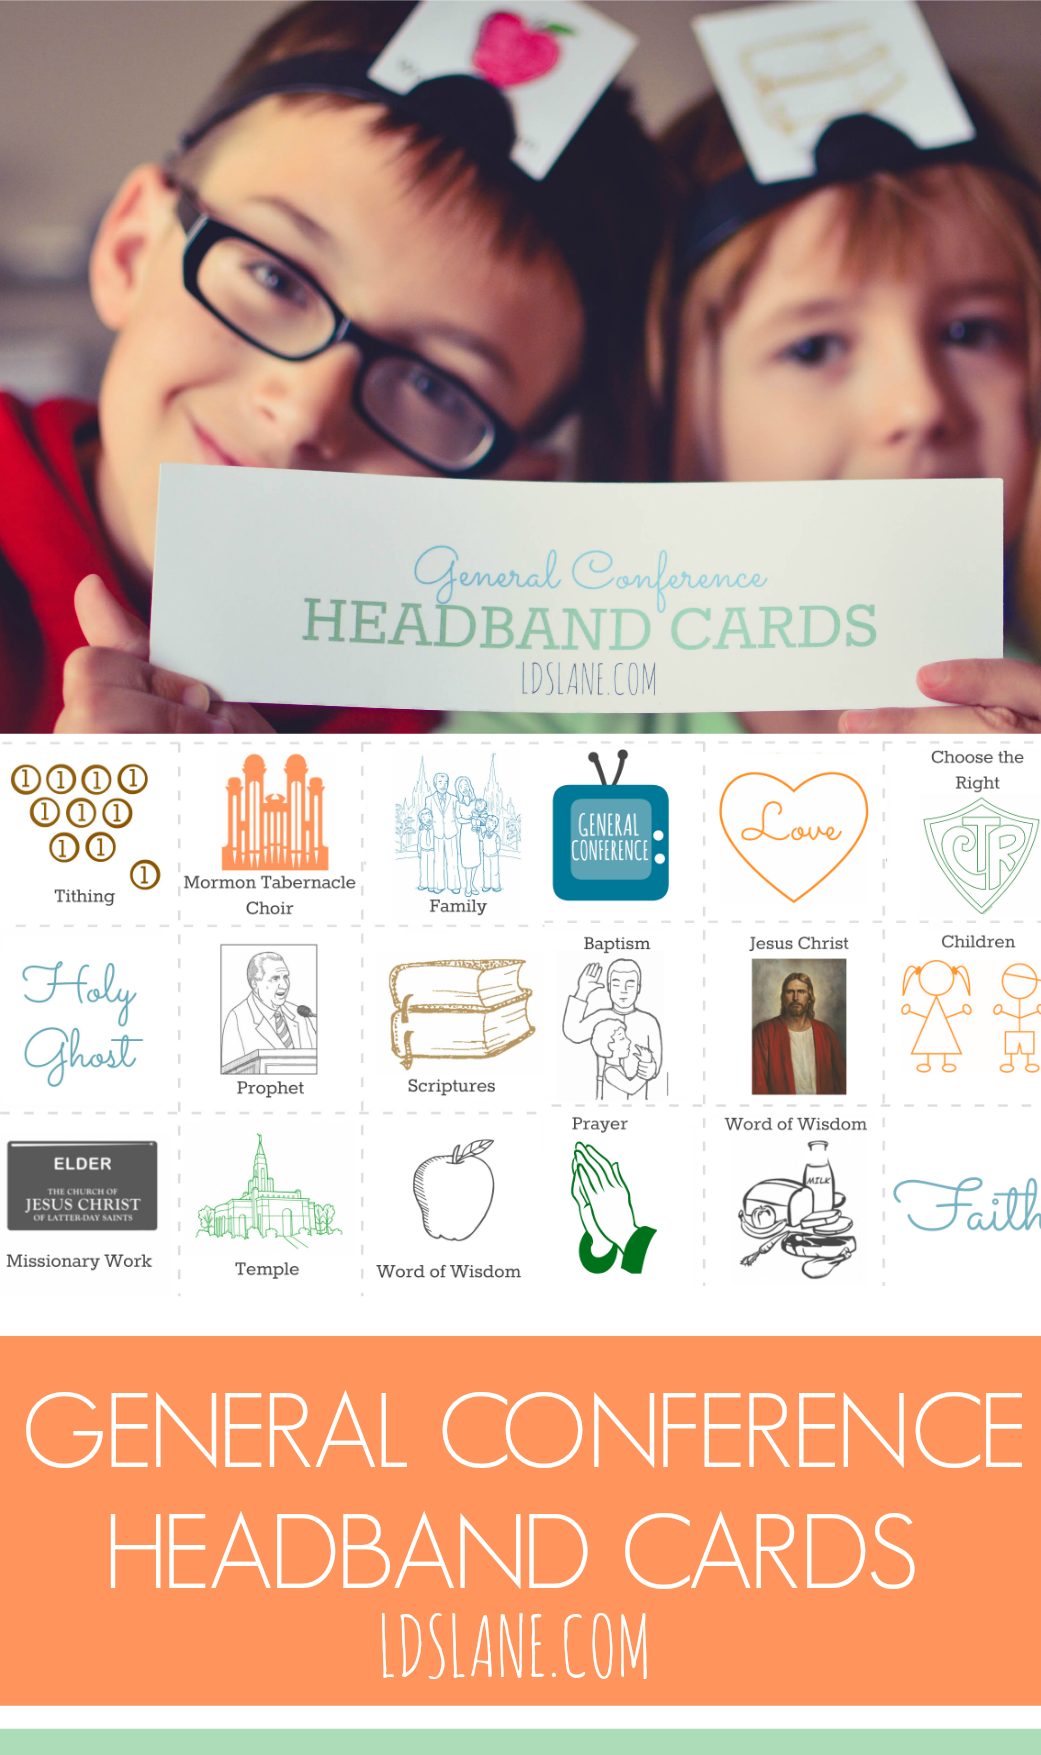 General Conference Headband Cards by LDSLane.Com #lds #mormon